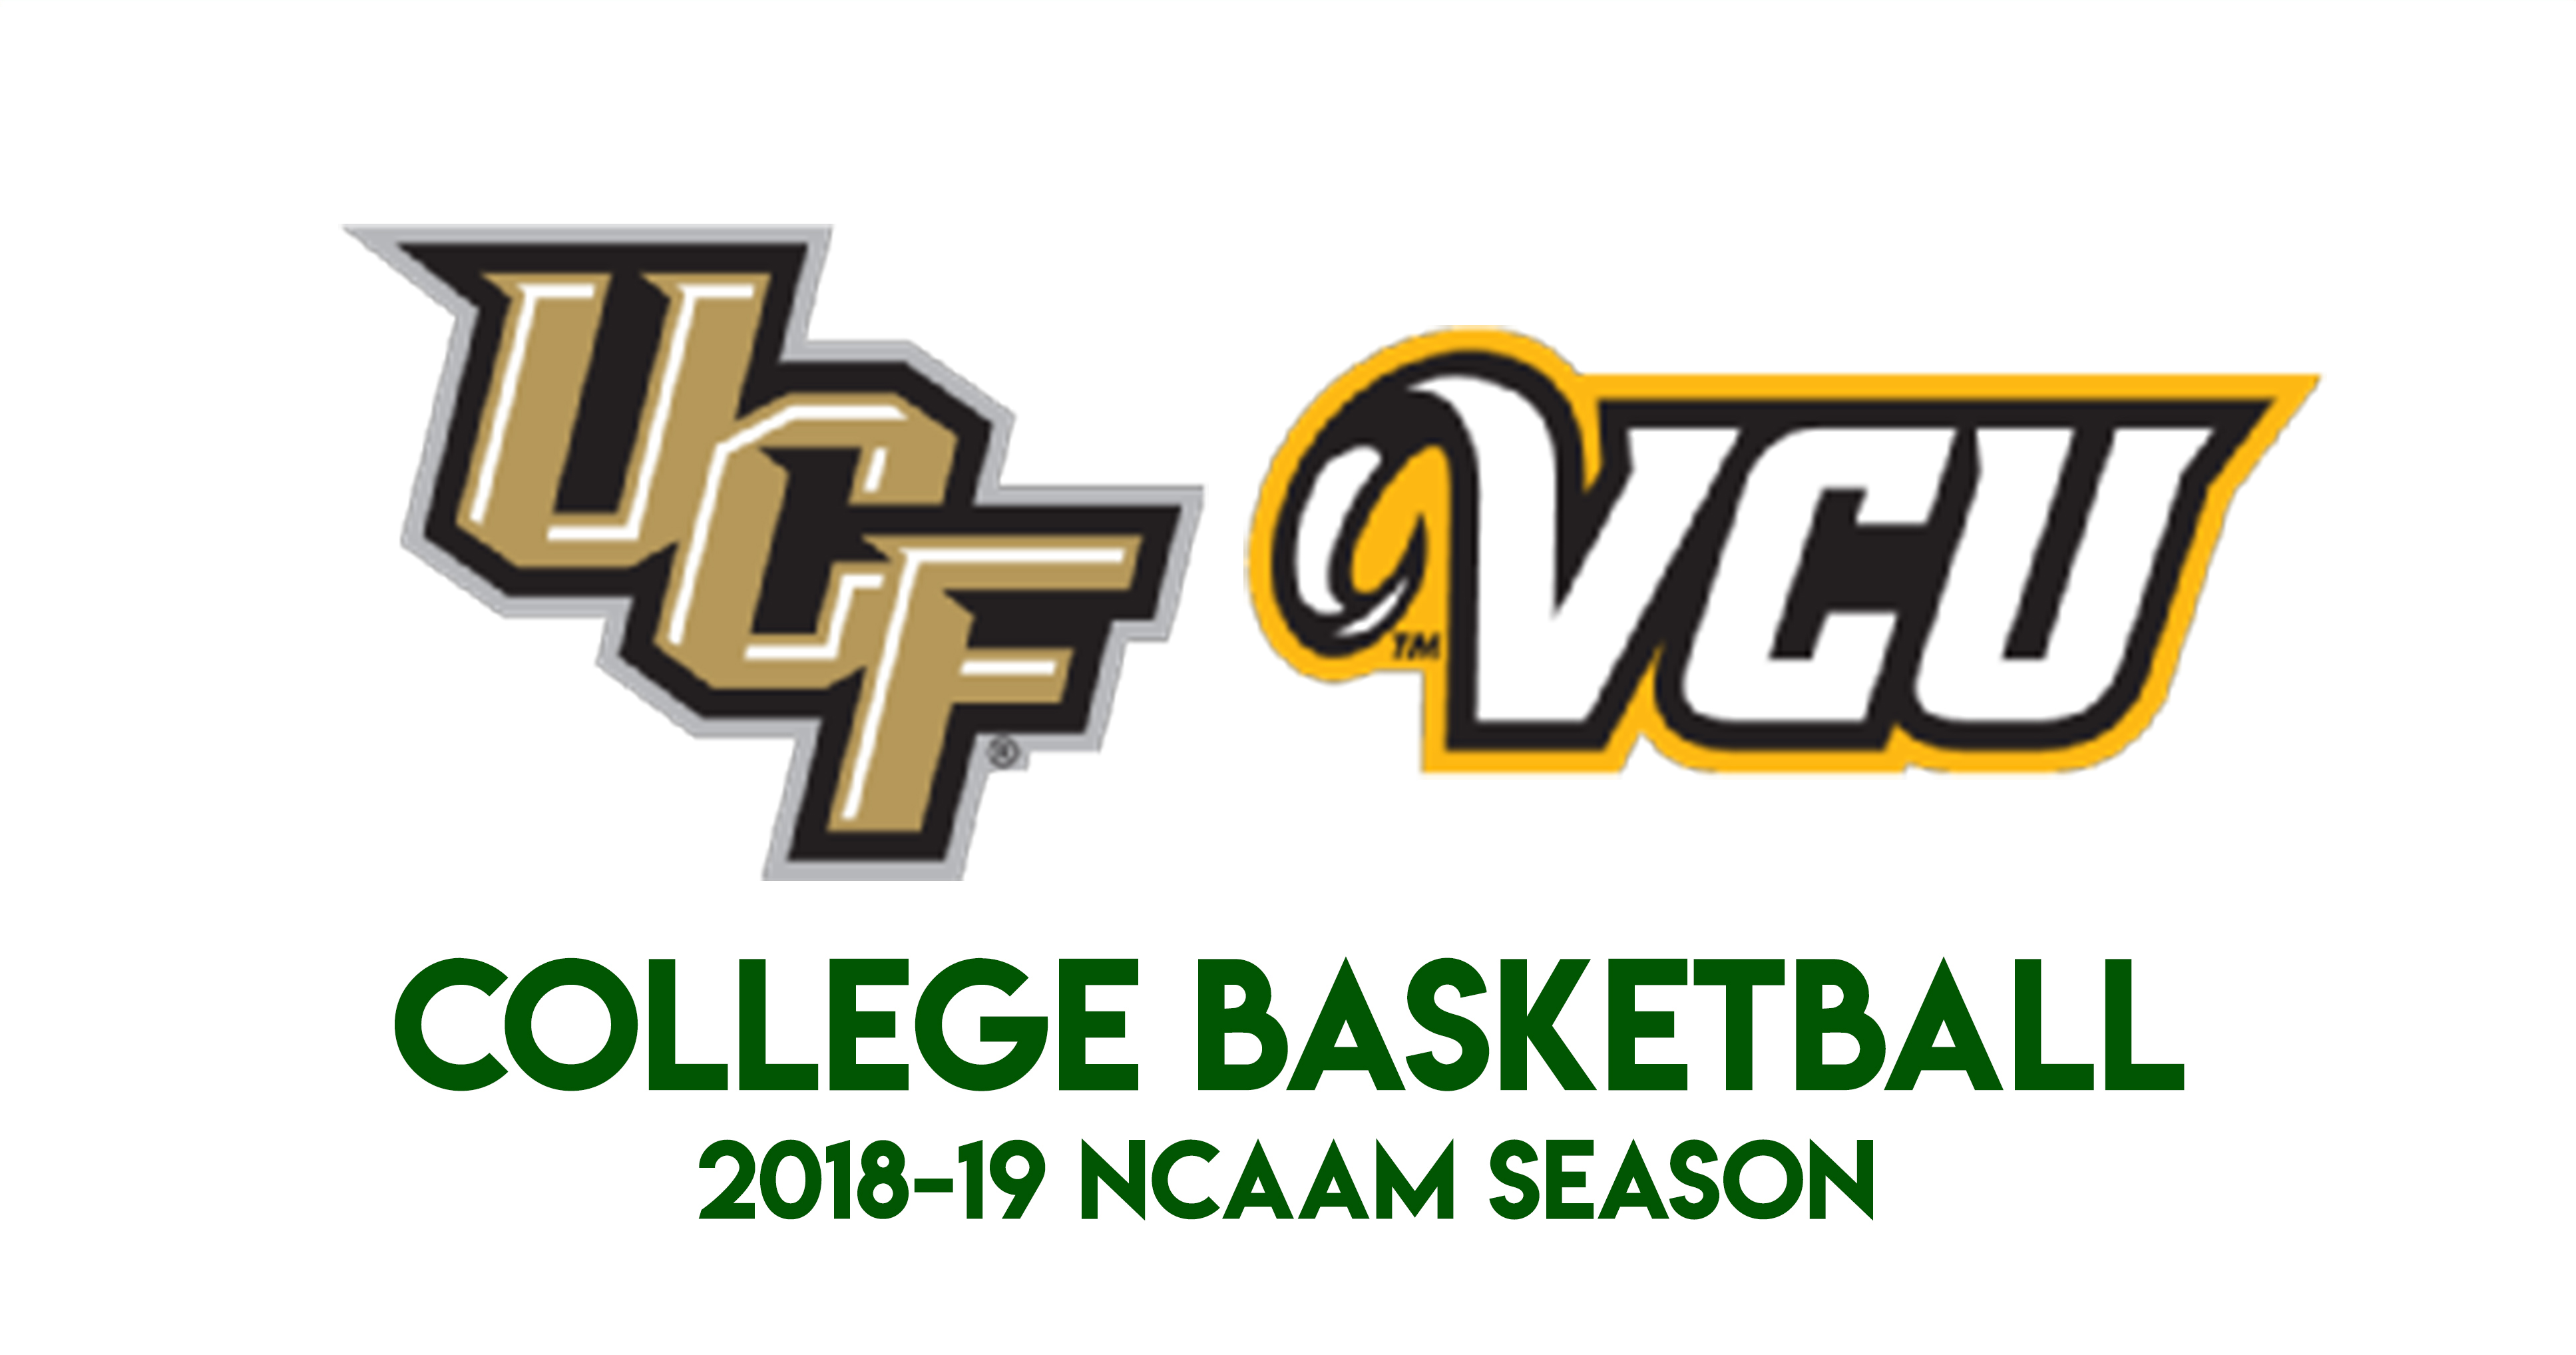 UCF Charges On To Second Round With Win Over VCU